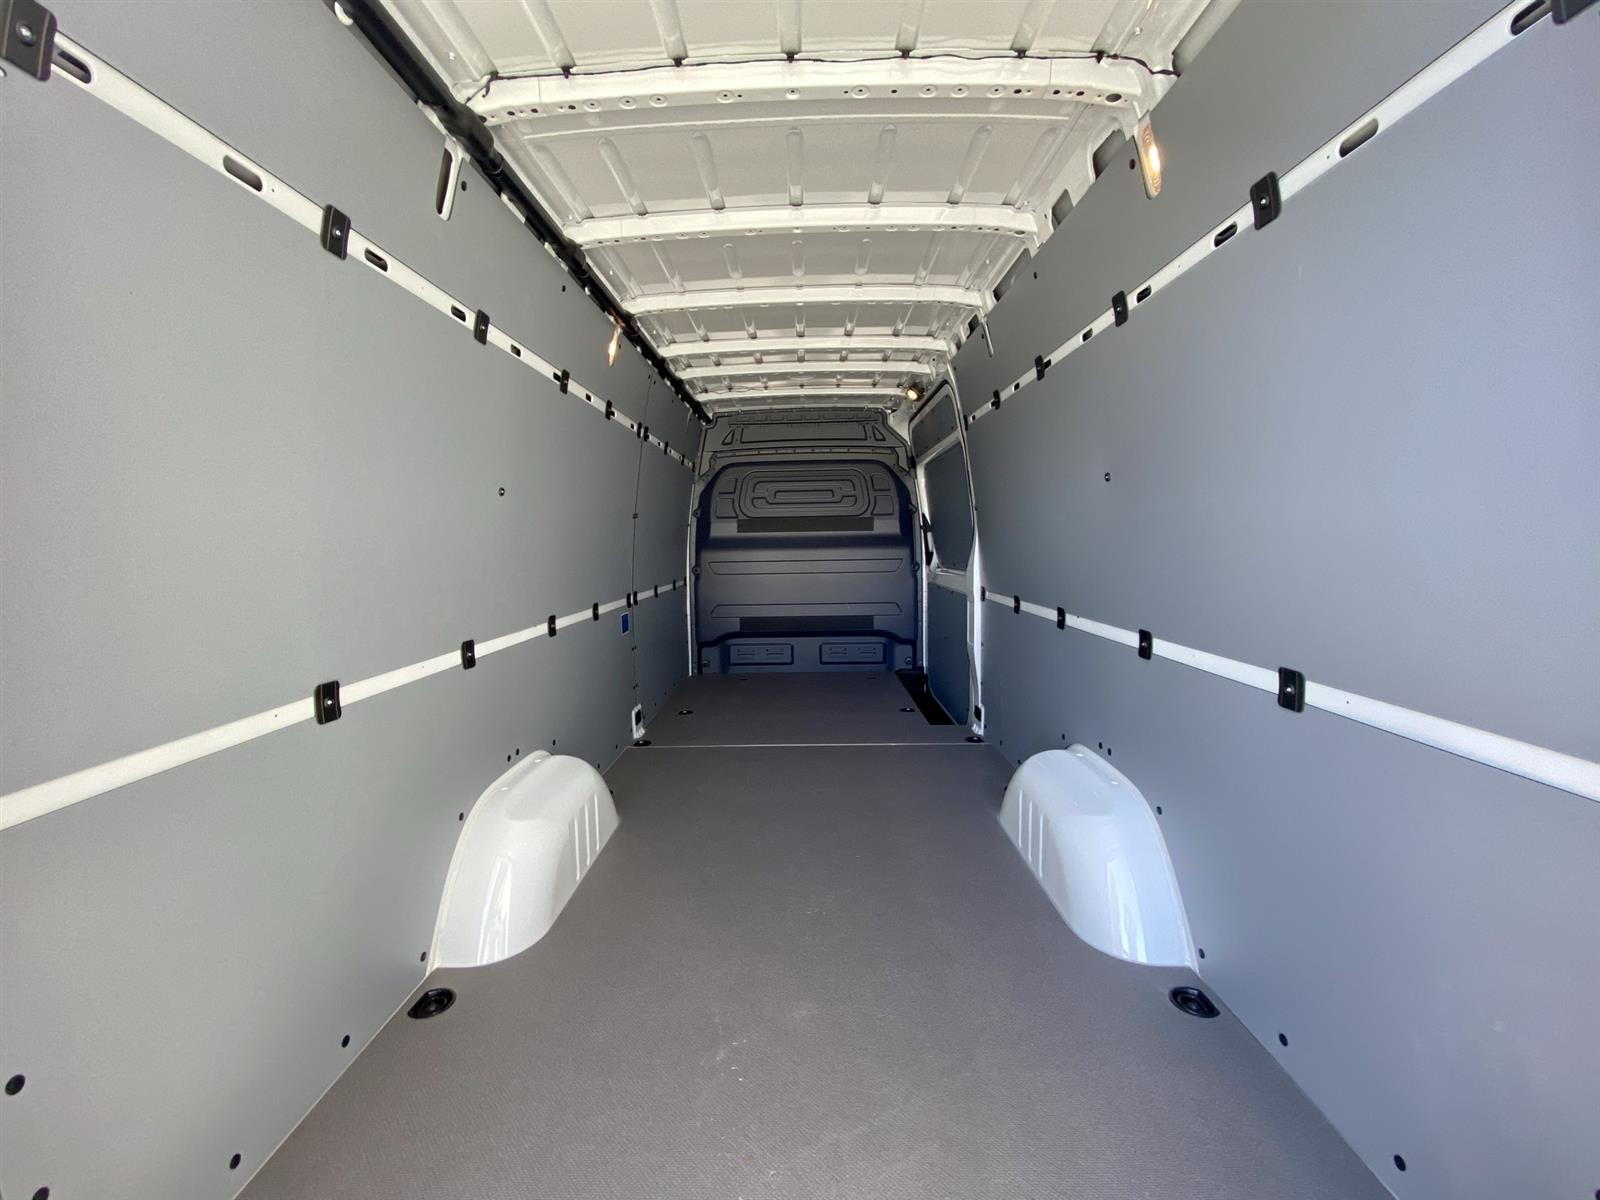 2020 Mercedes-Benz Sprinter 2500 High Roof 4x2, Empty Cargo Van #MV0059 - photo 2